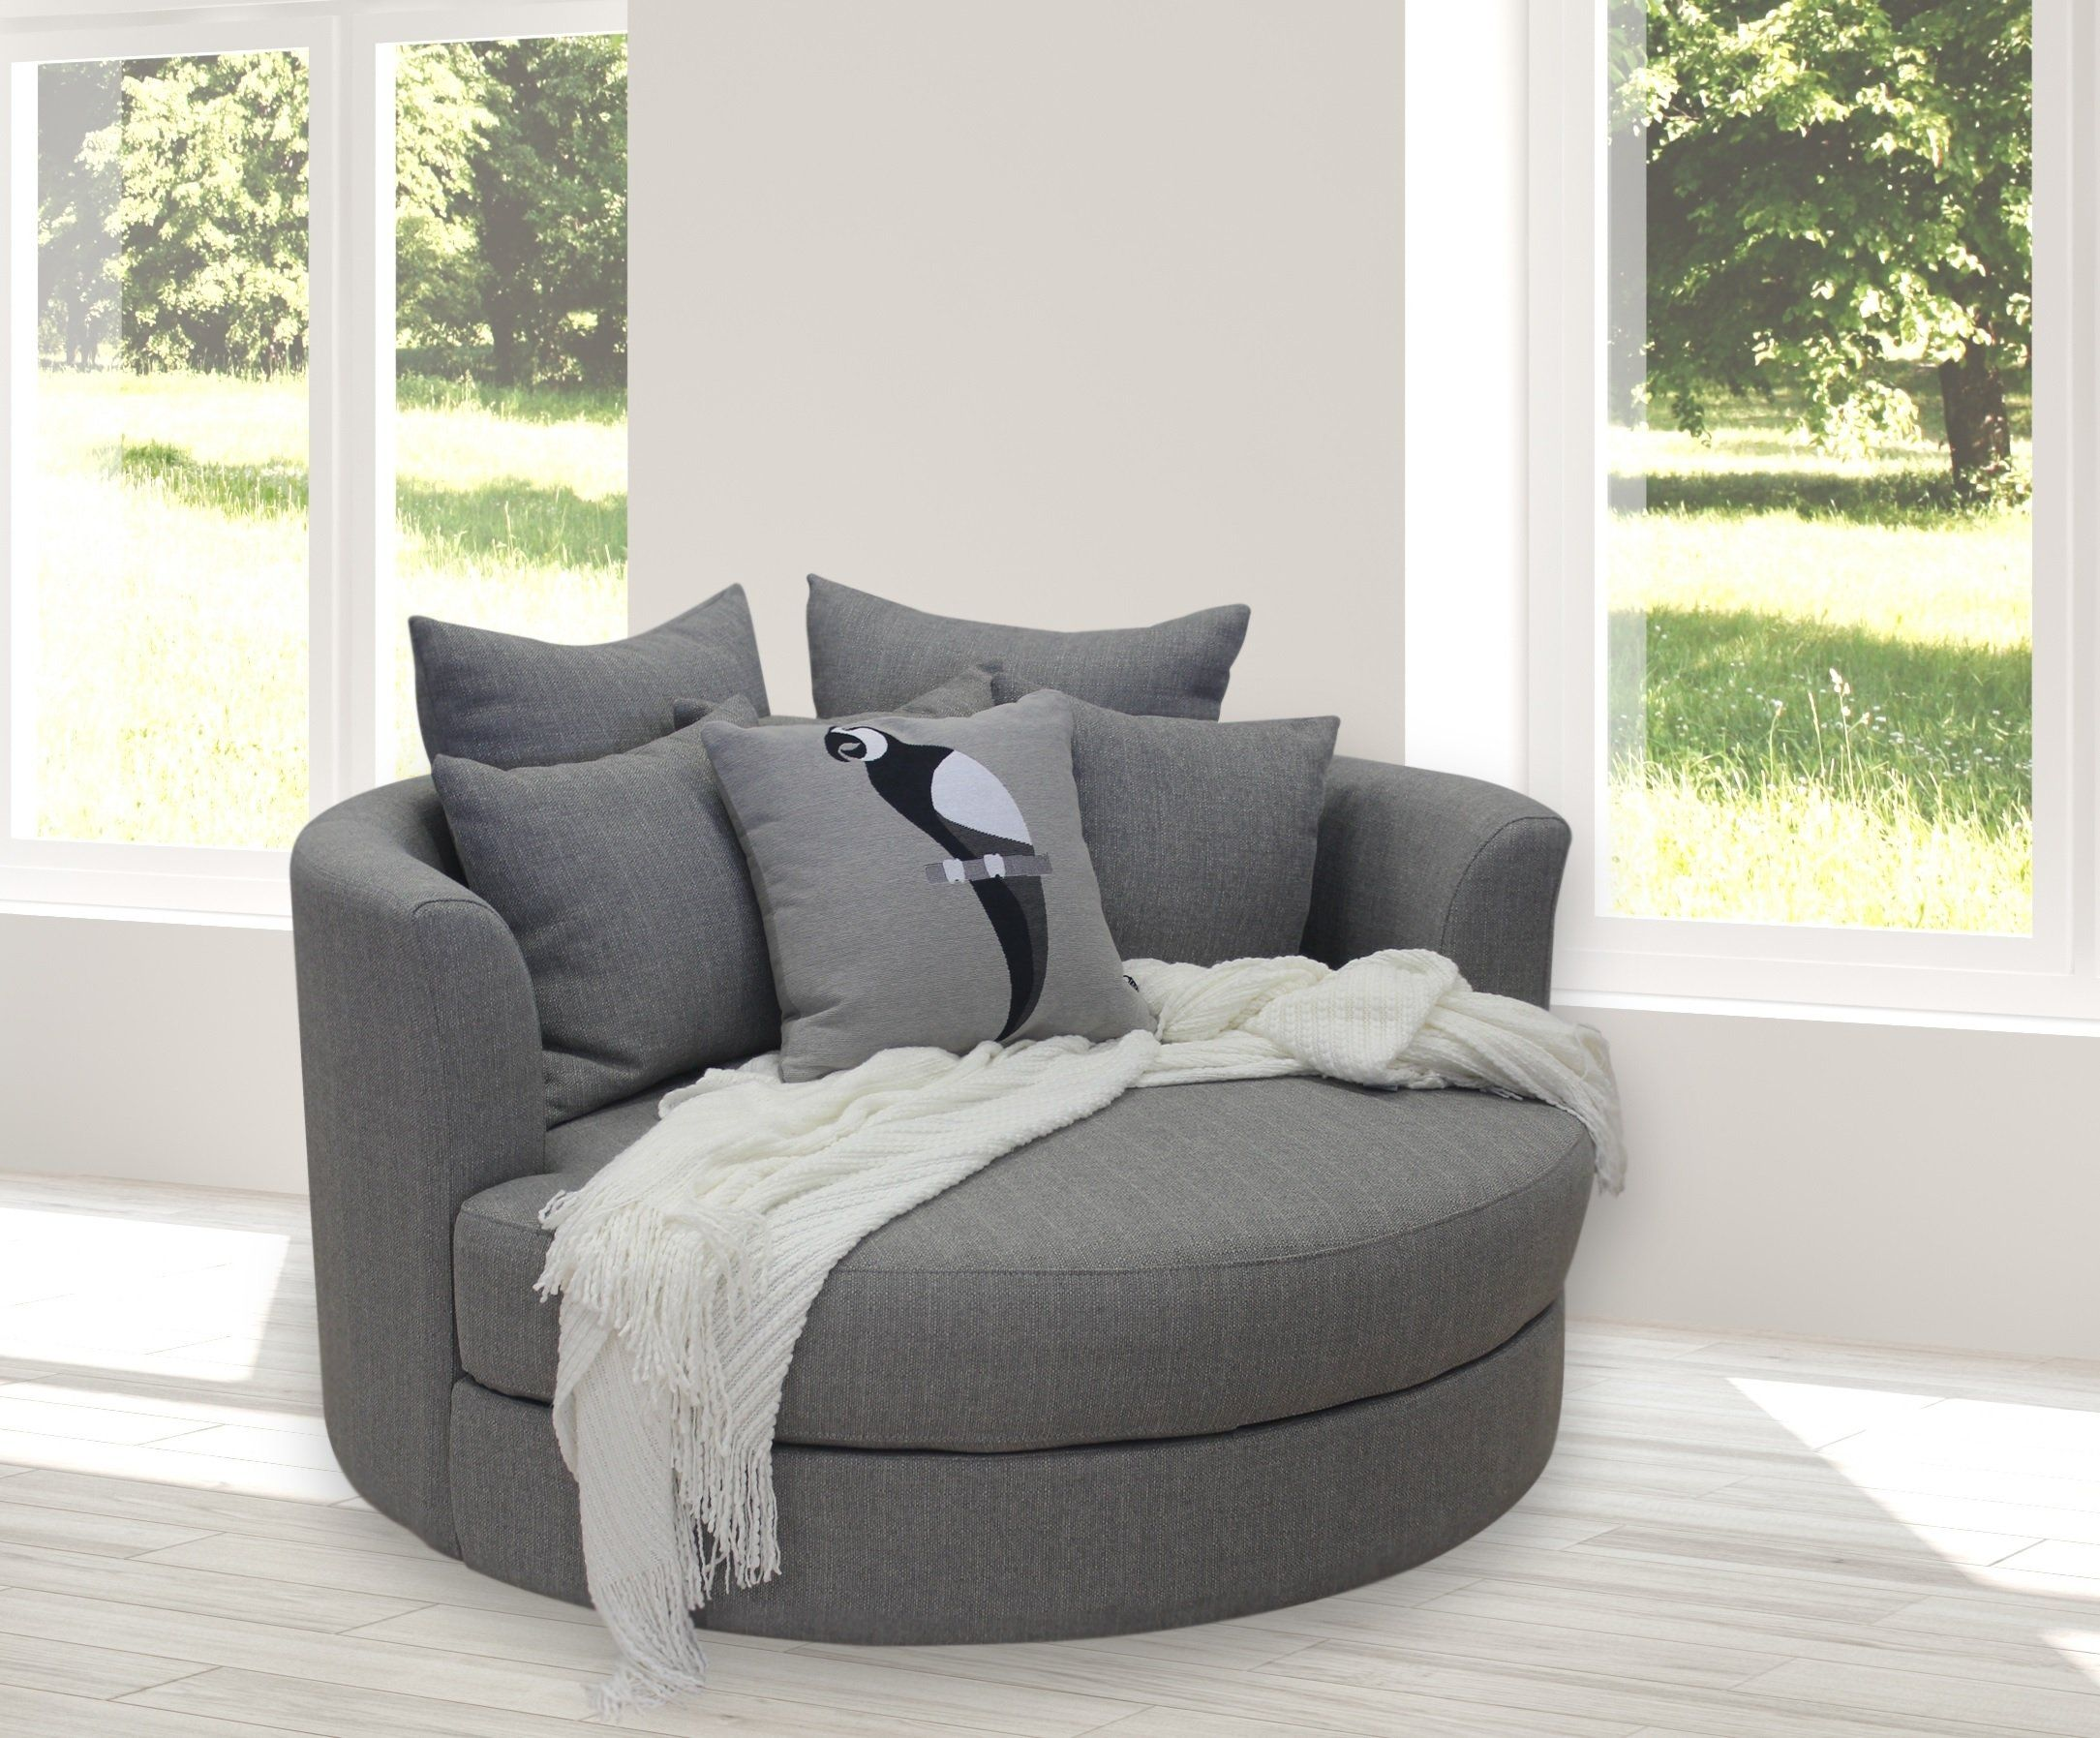 Cuddler large swivel accent chair in sky grey Our